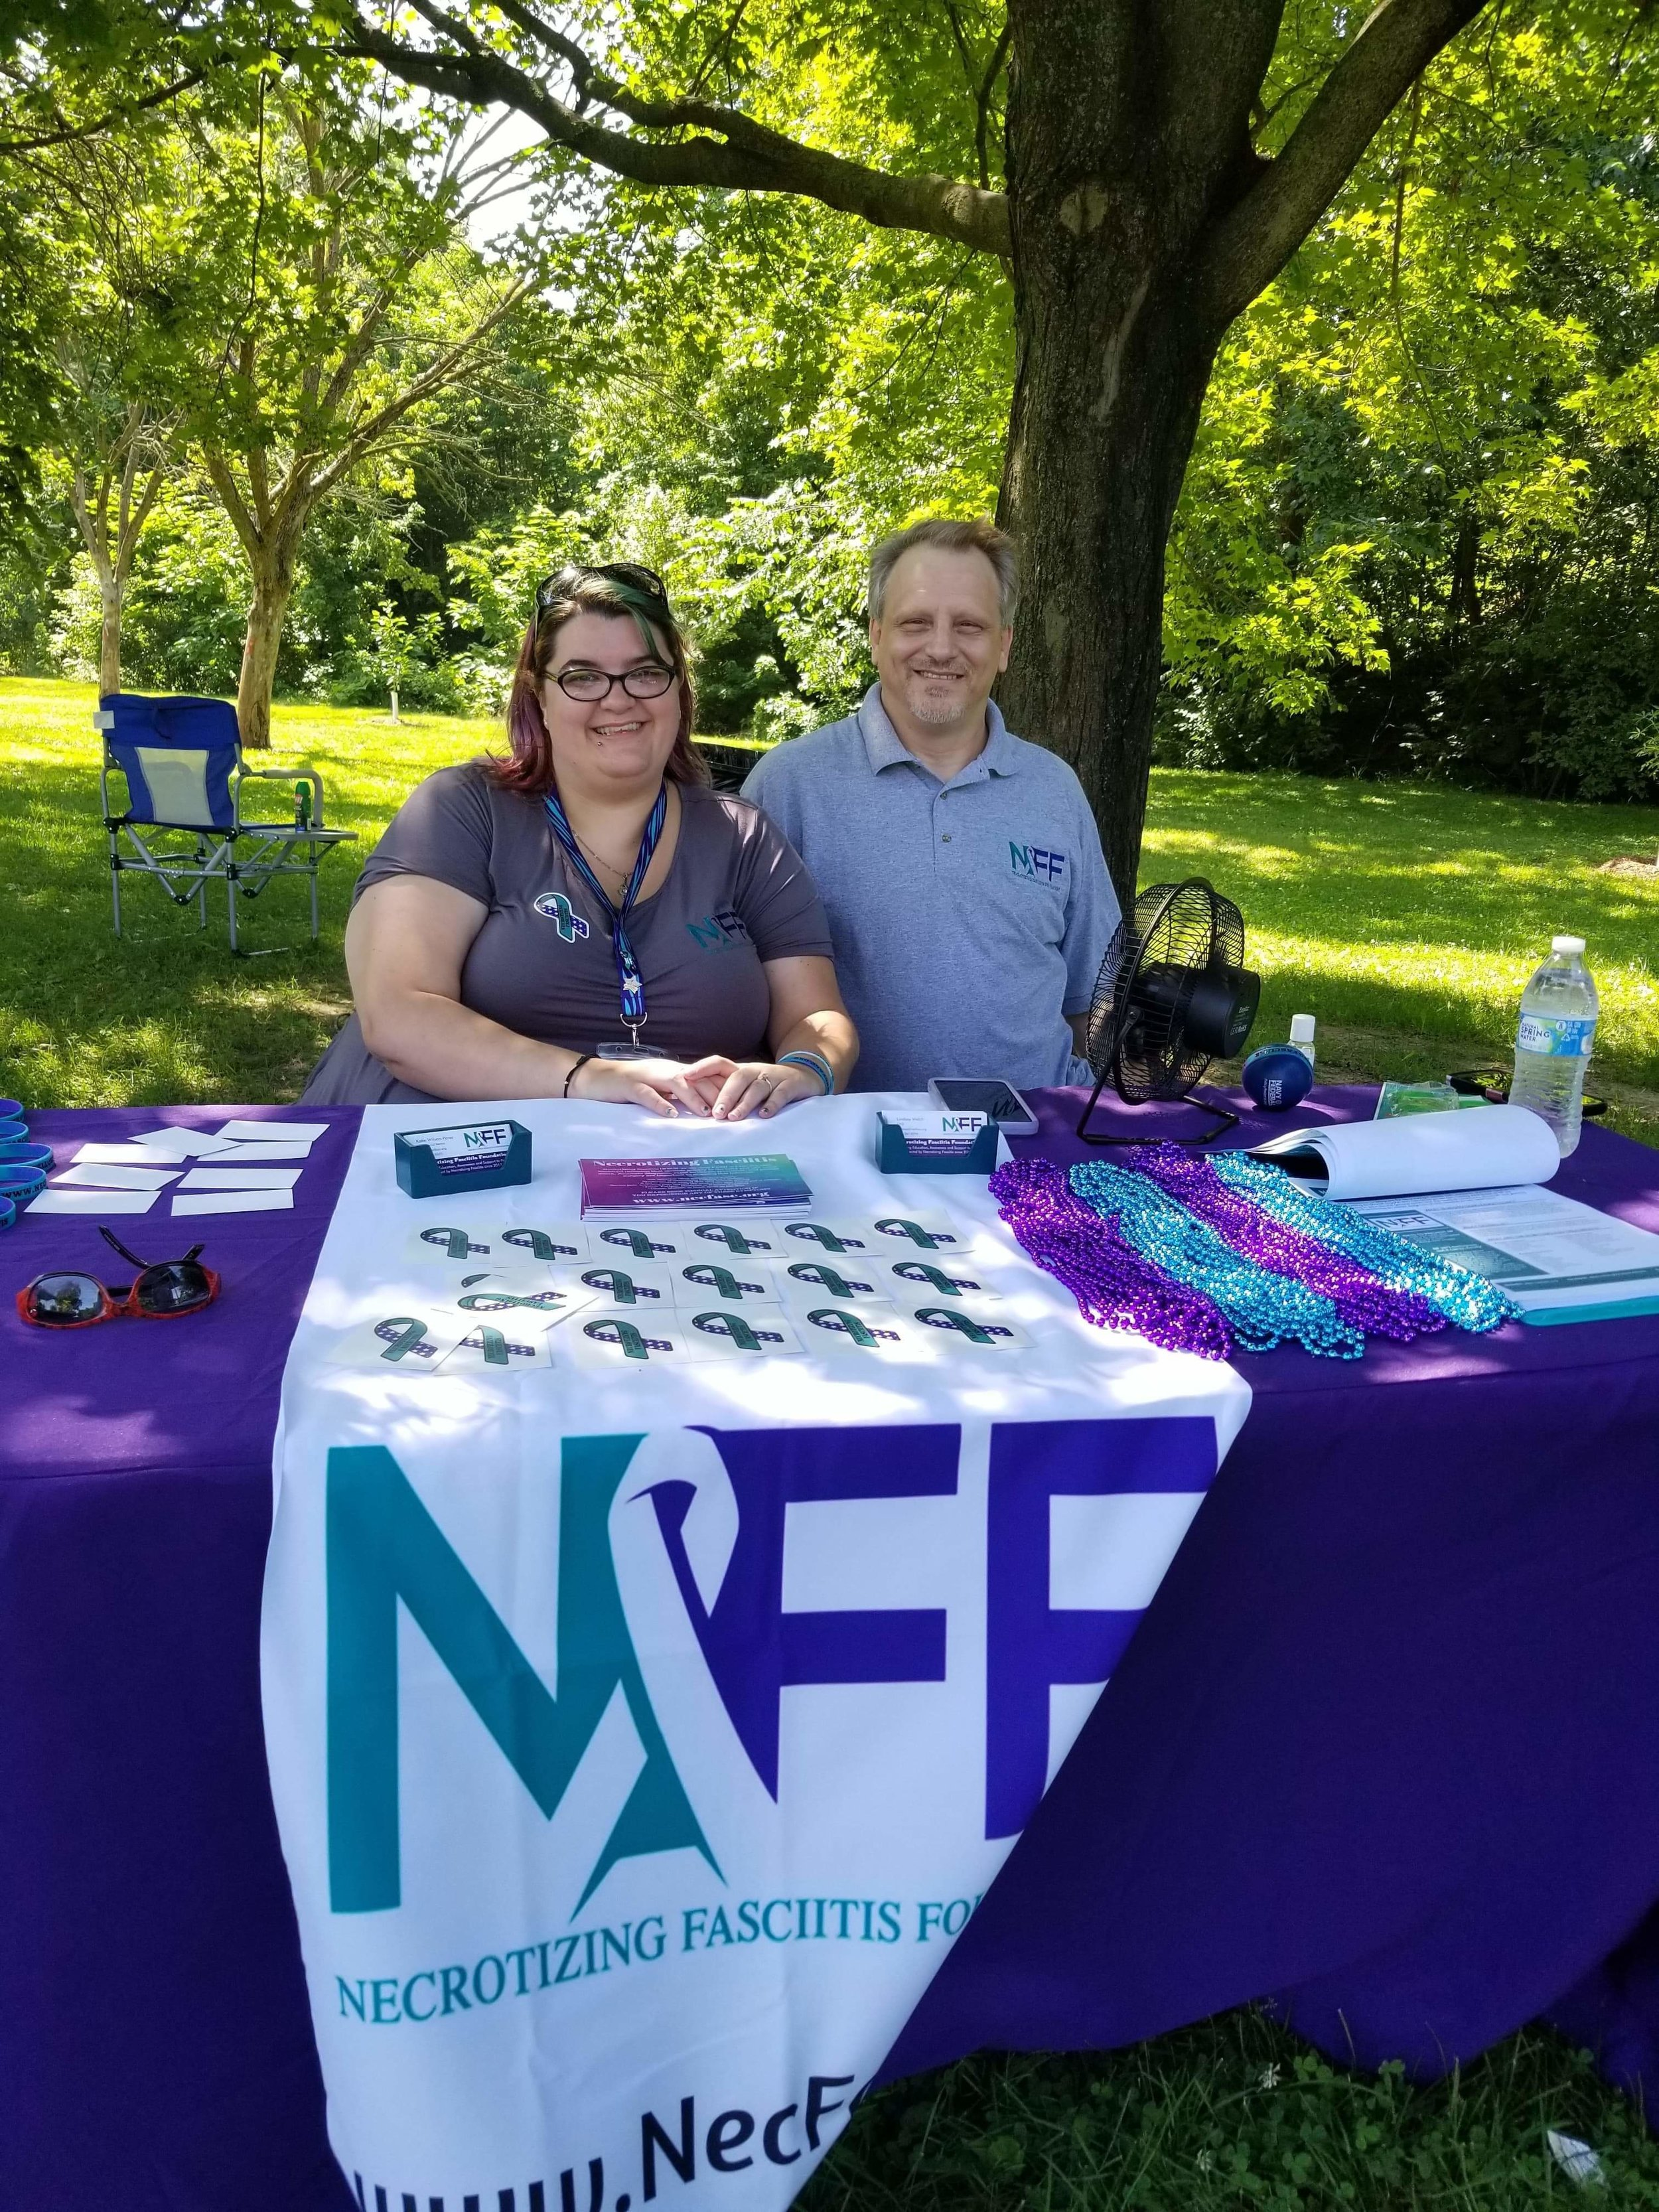 Co-CEOs Lindsay Welch and Tim Hayden at our NFF table.